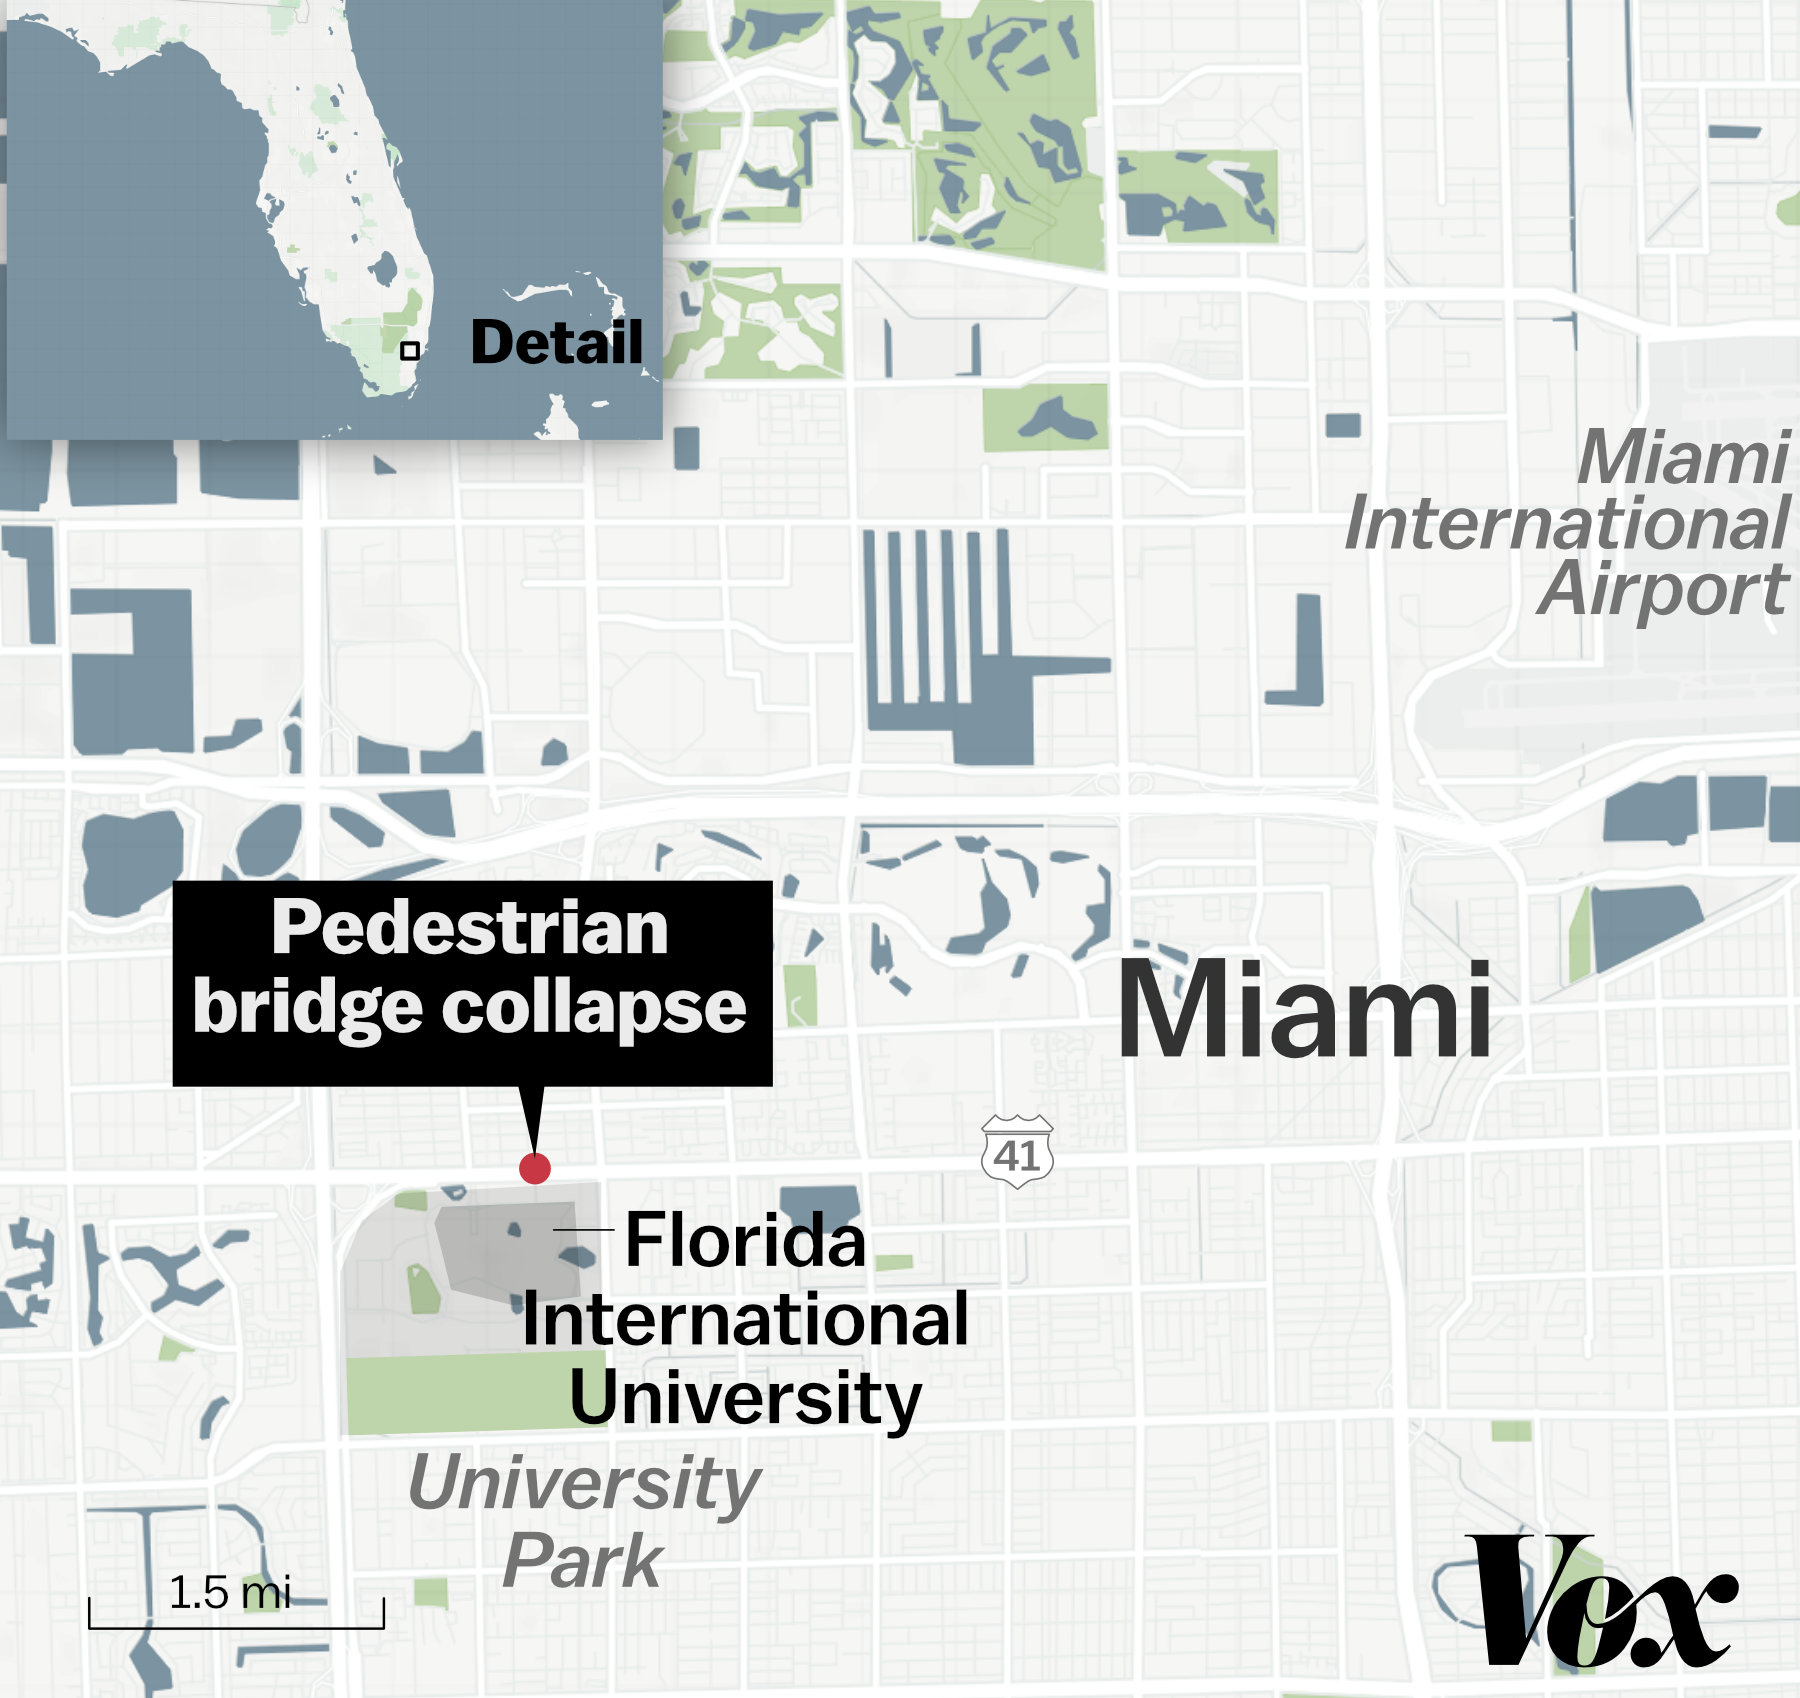 Cracks were found in bridge days before collapse — FL agency